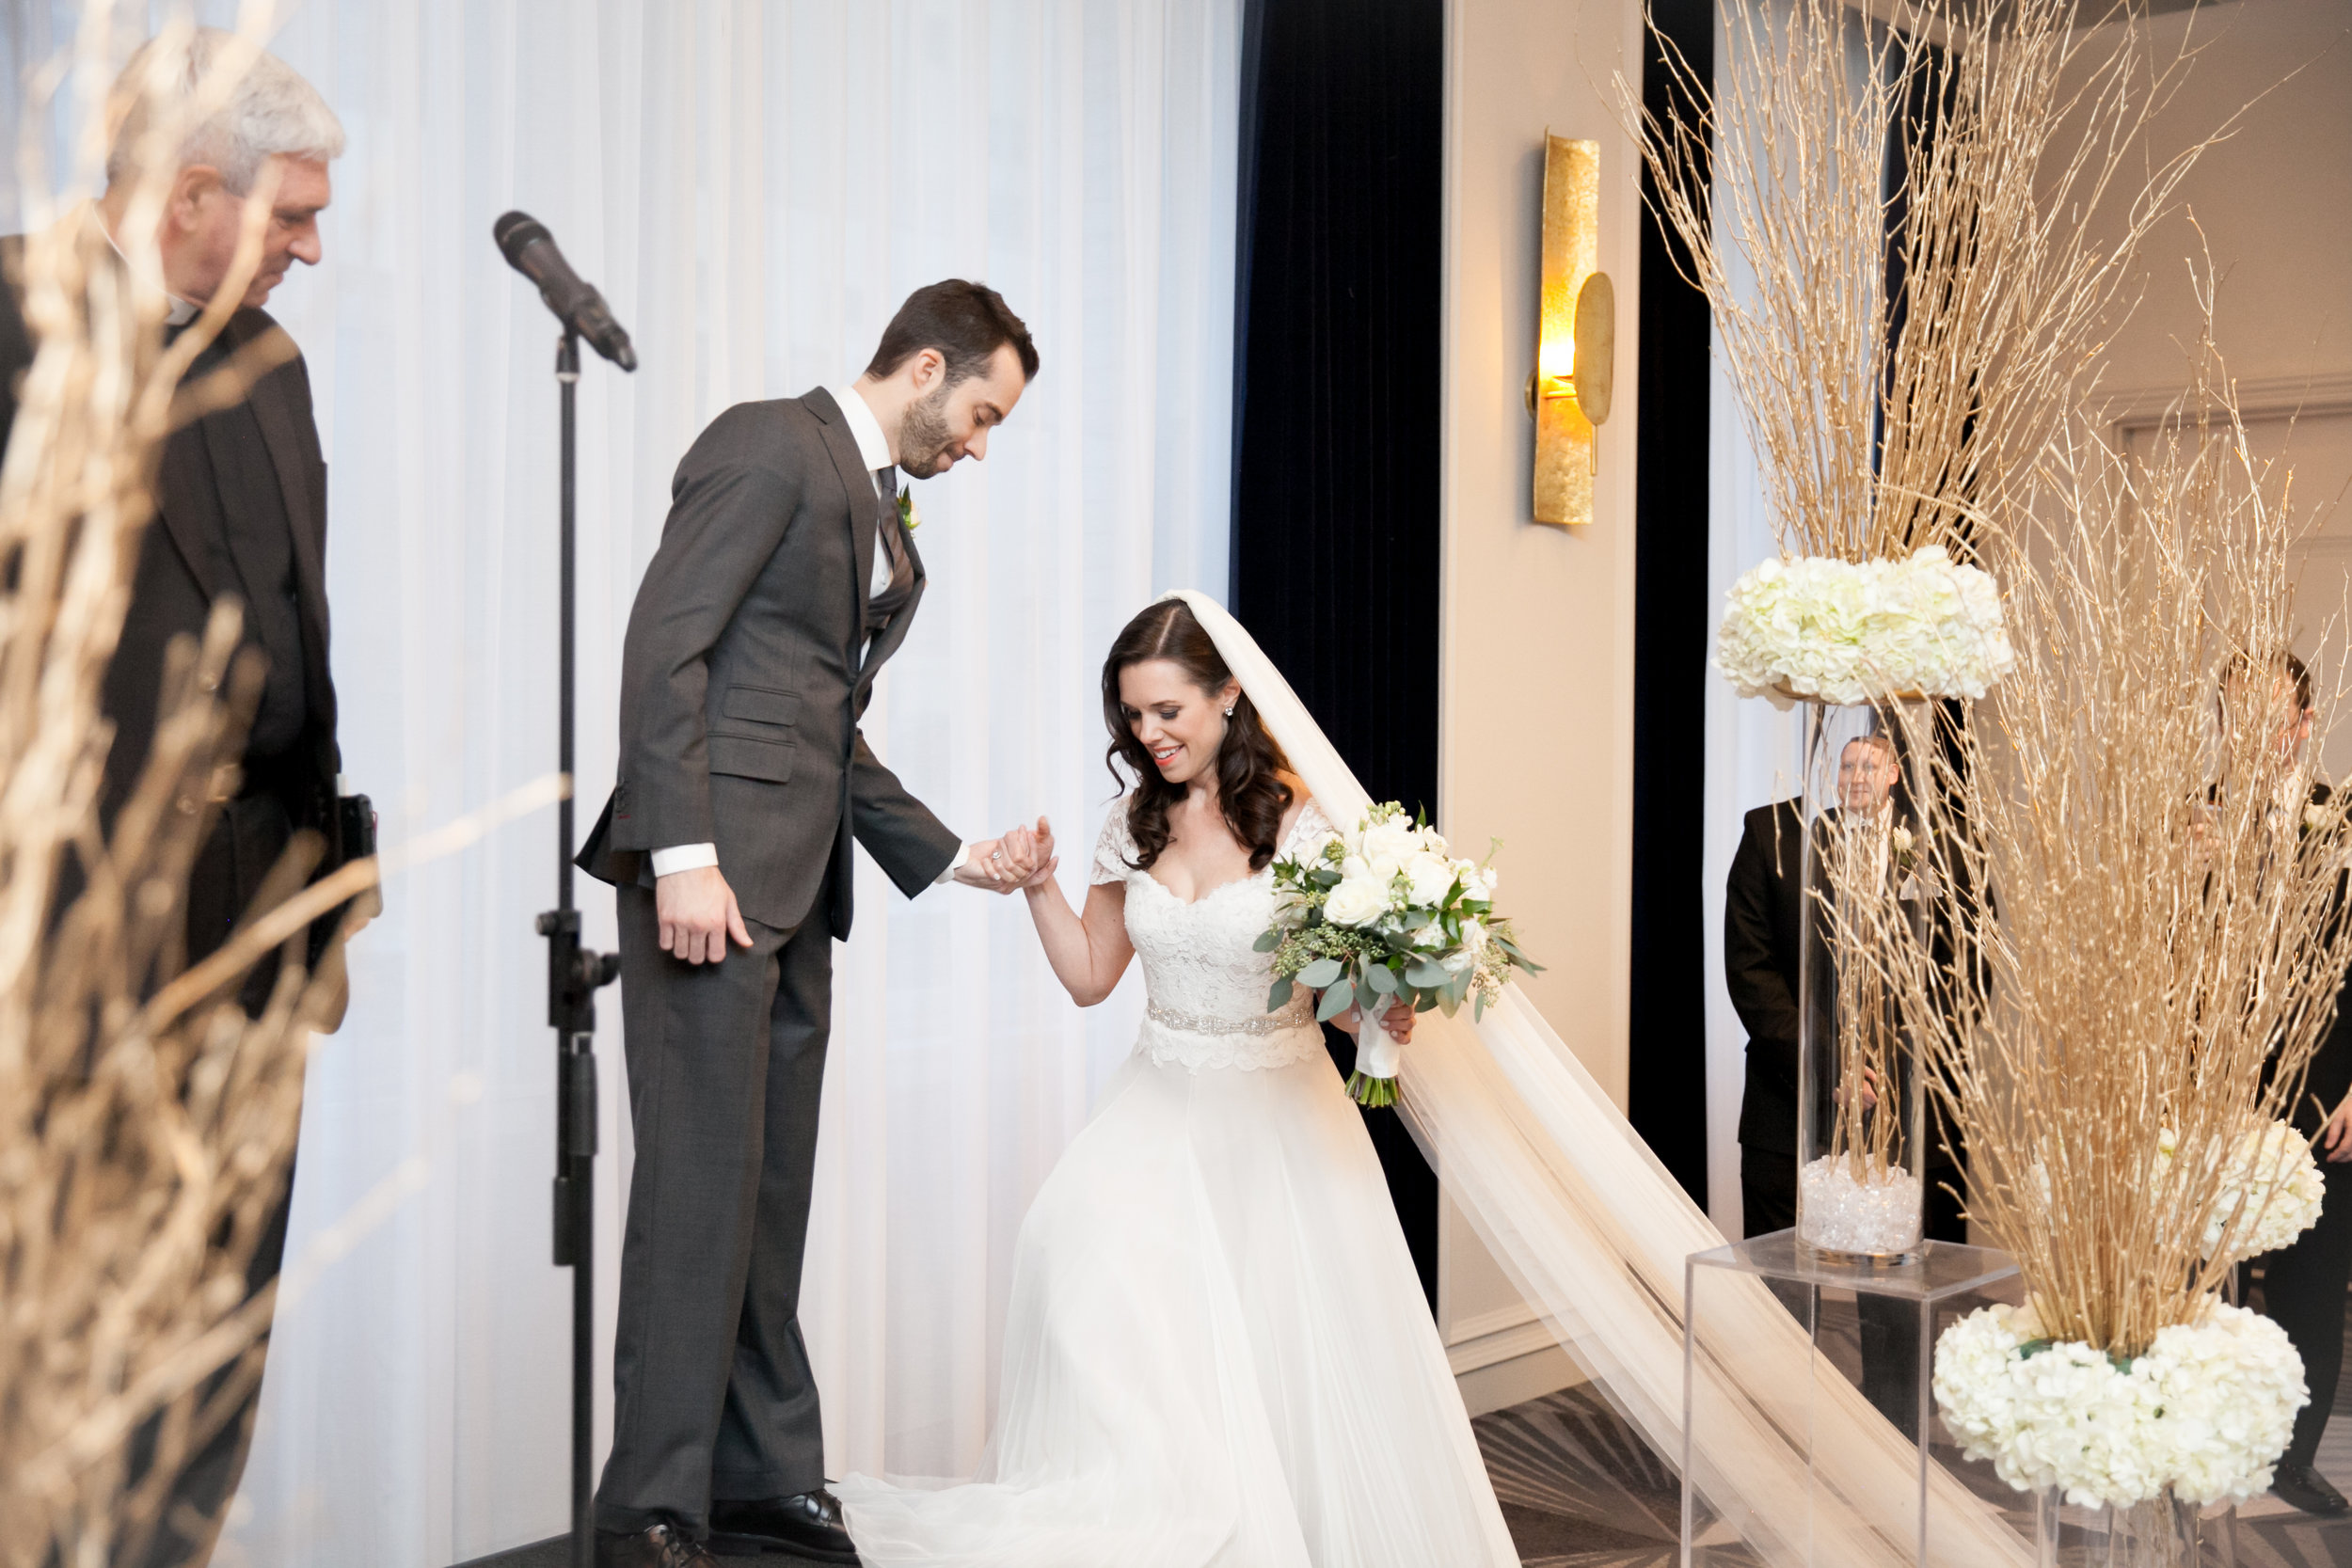 LisaDiederichPhotography_Brooke&NeilWedding_Blog-42.jpg